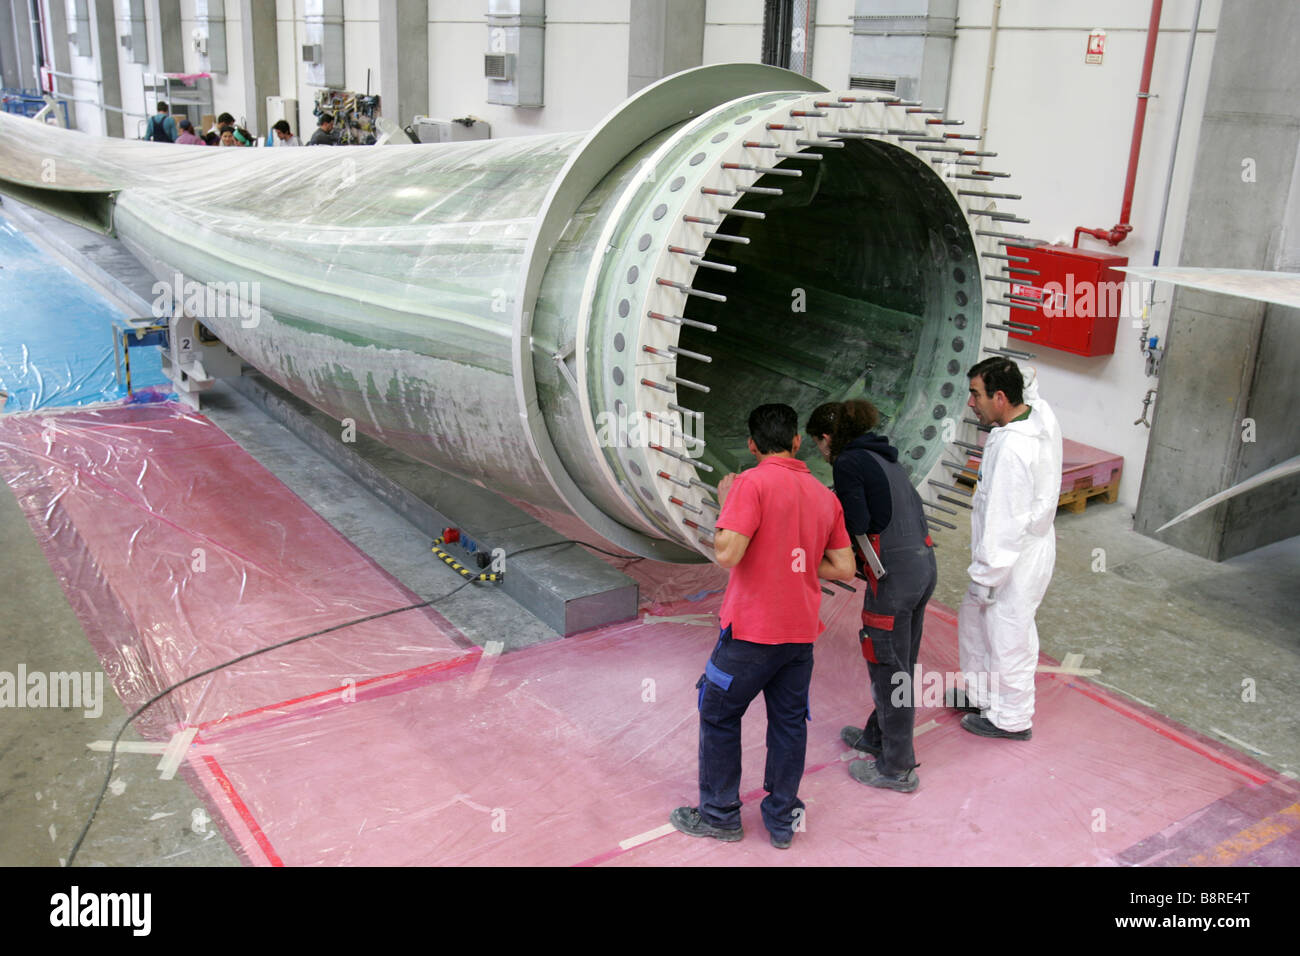 Workers next to a giant wind turbine blade at the factory VentoMoinho at Viana do Castelo, Portugal. - Stock Image